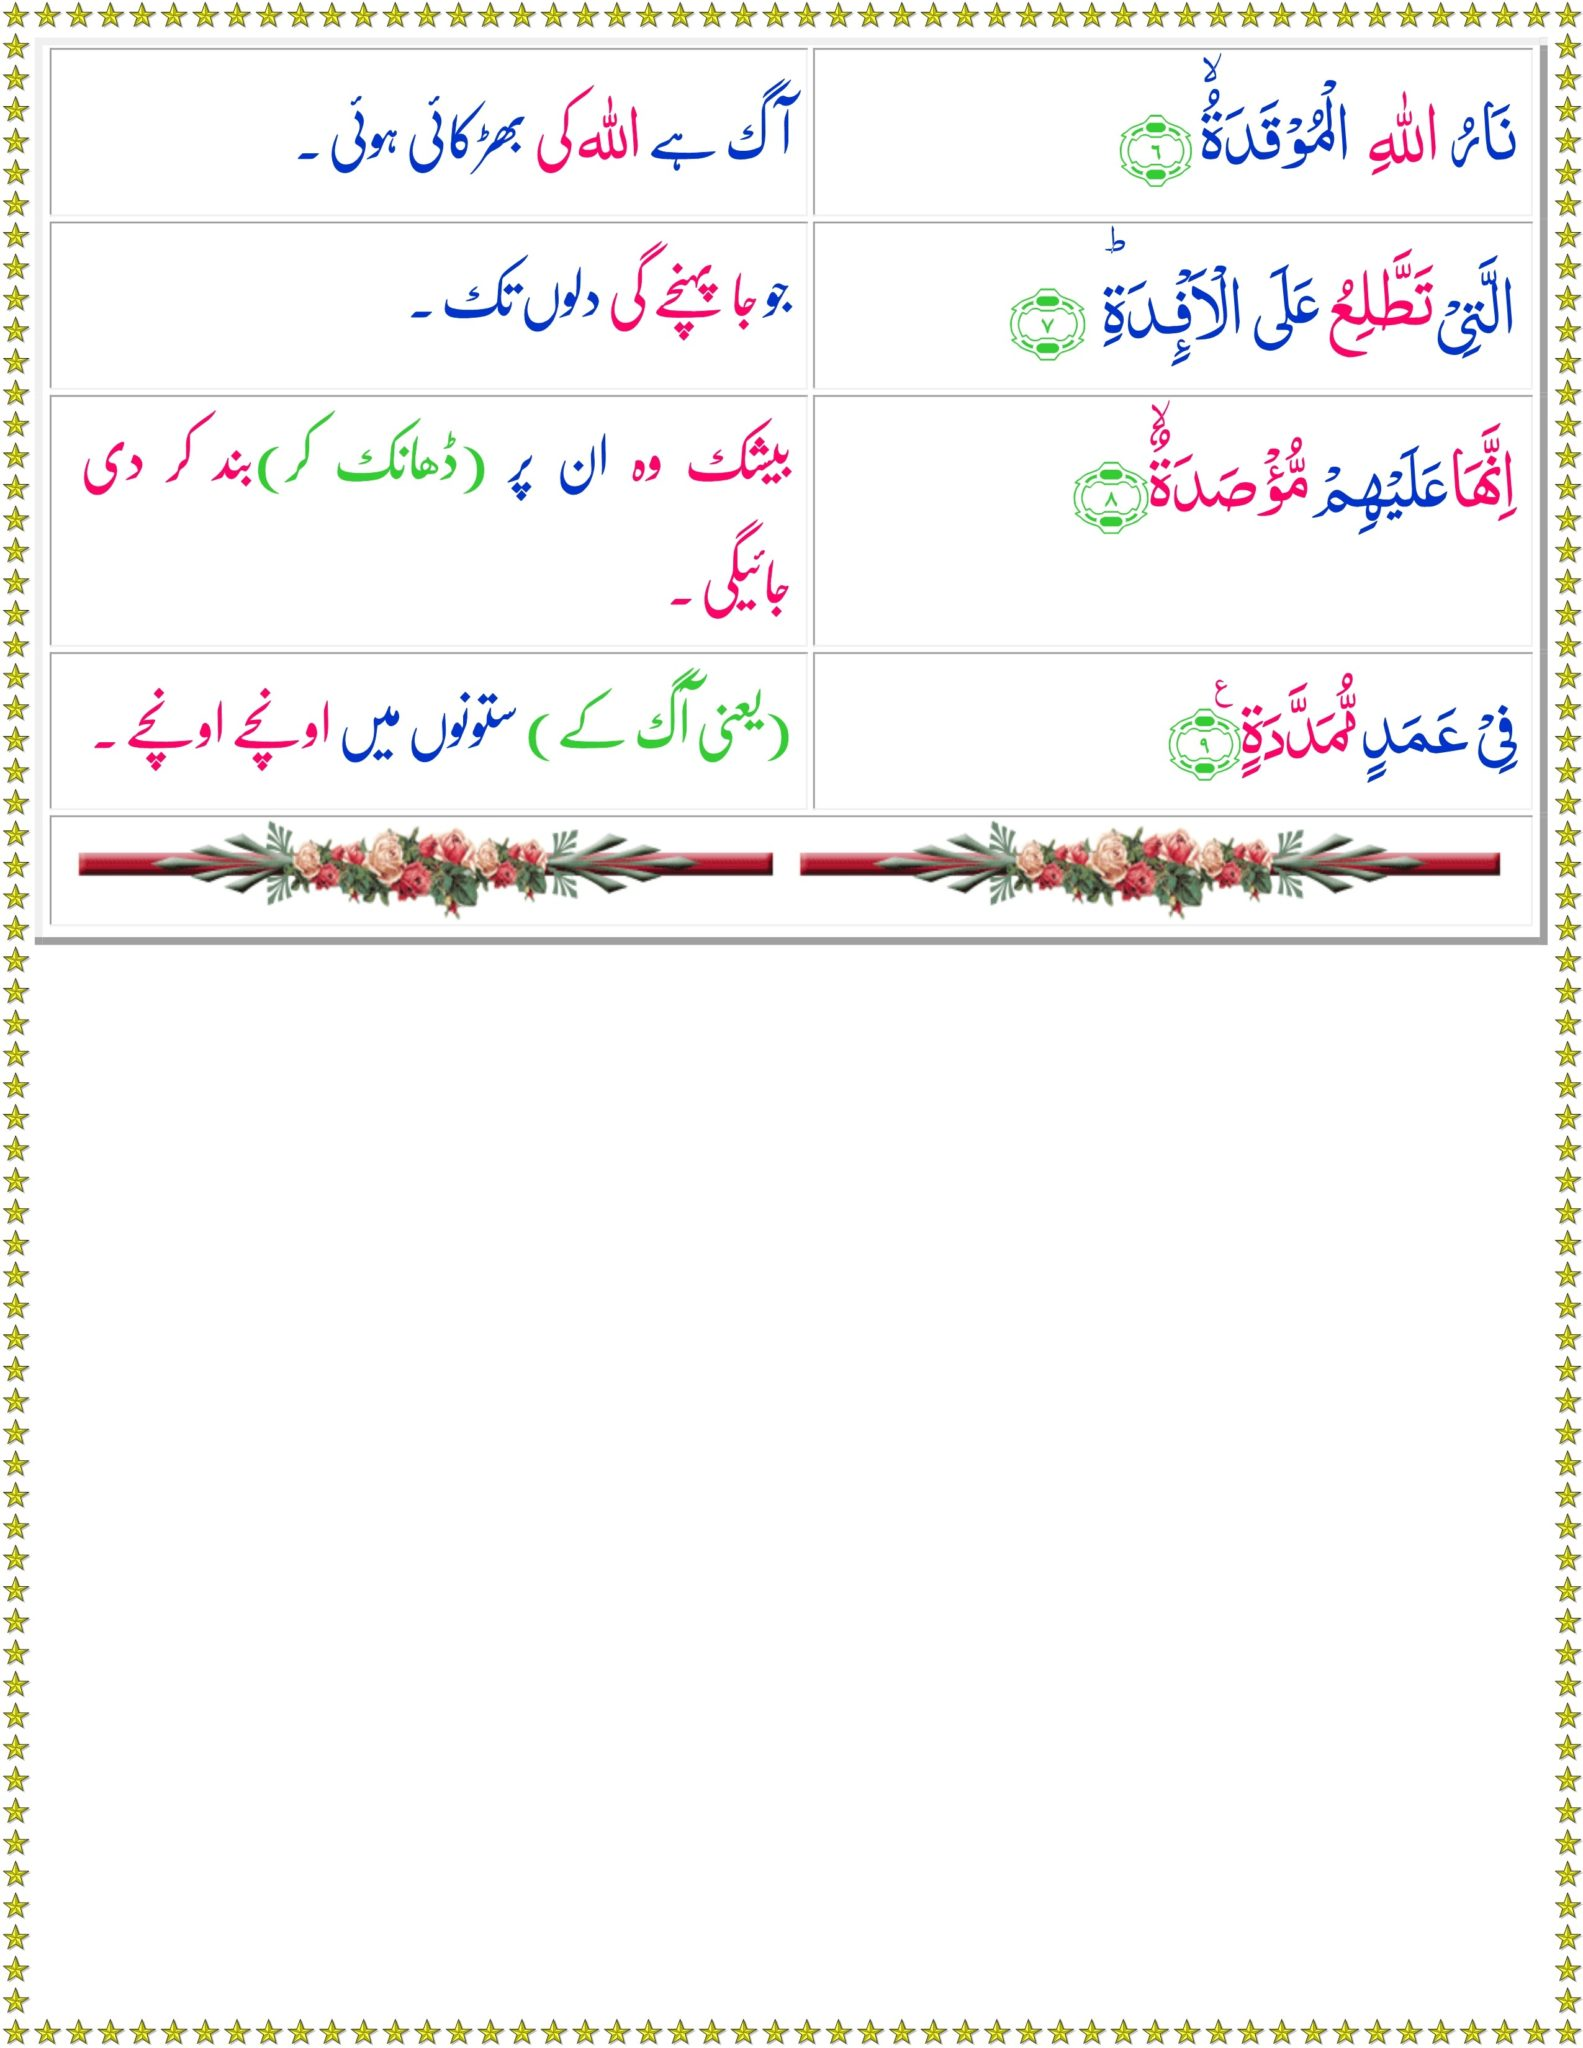 Surah Al Humazah translation in Urdu, Hindi